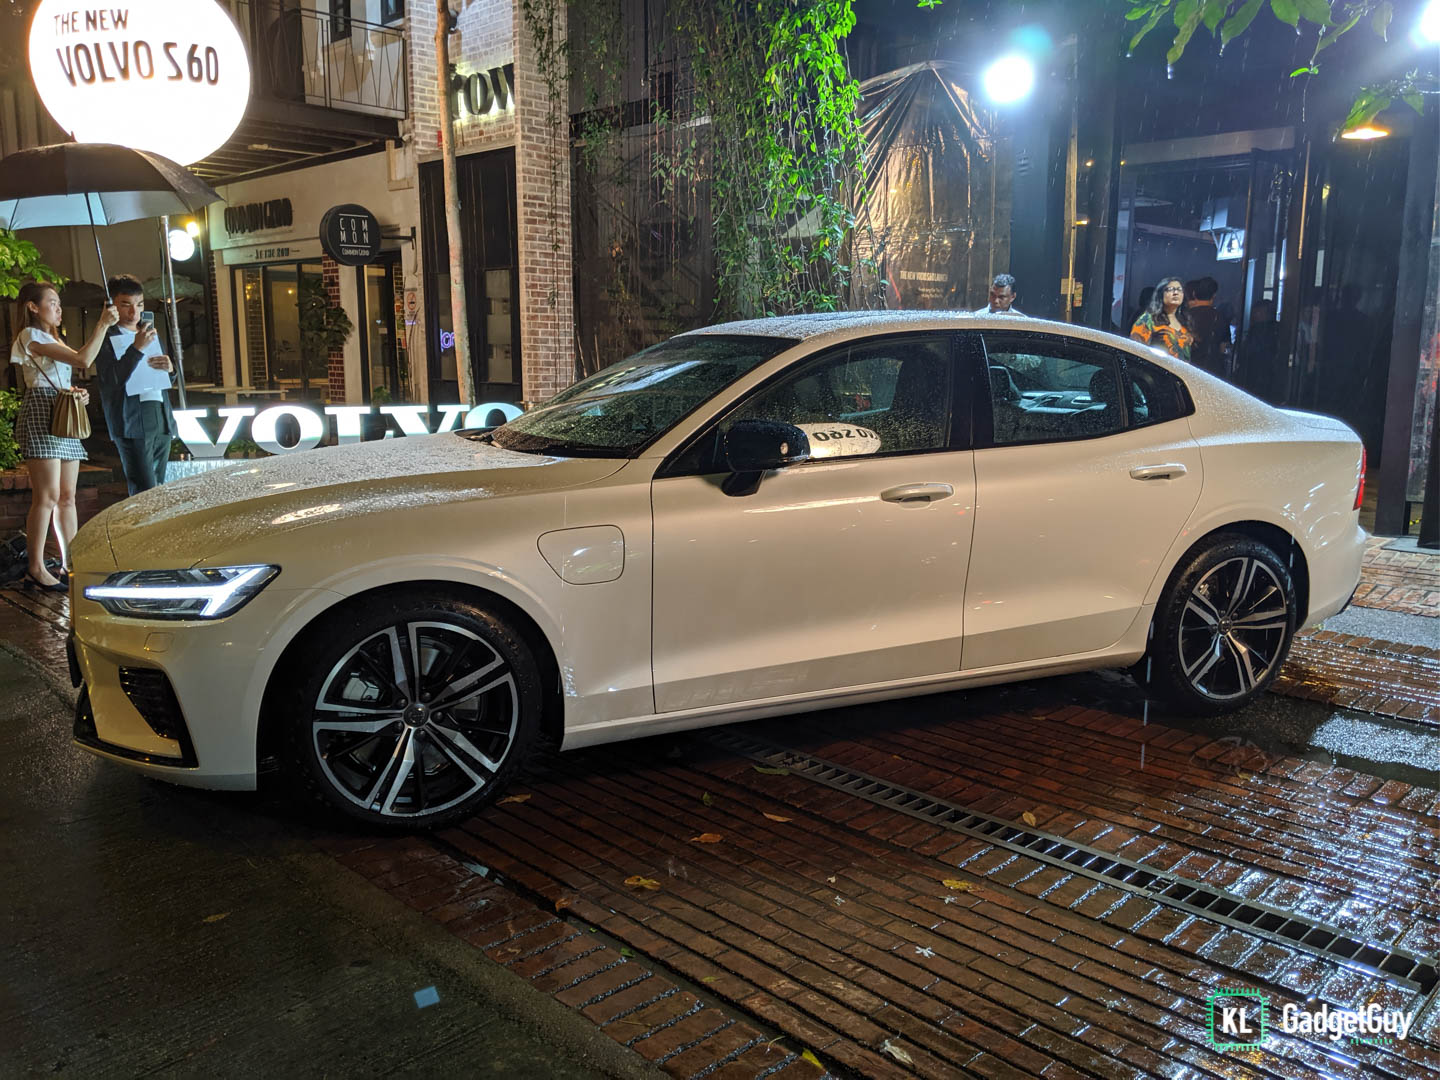 The new Volvo S60 offers 407hp and 640Nm for RM295k in Malaysia 6